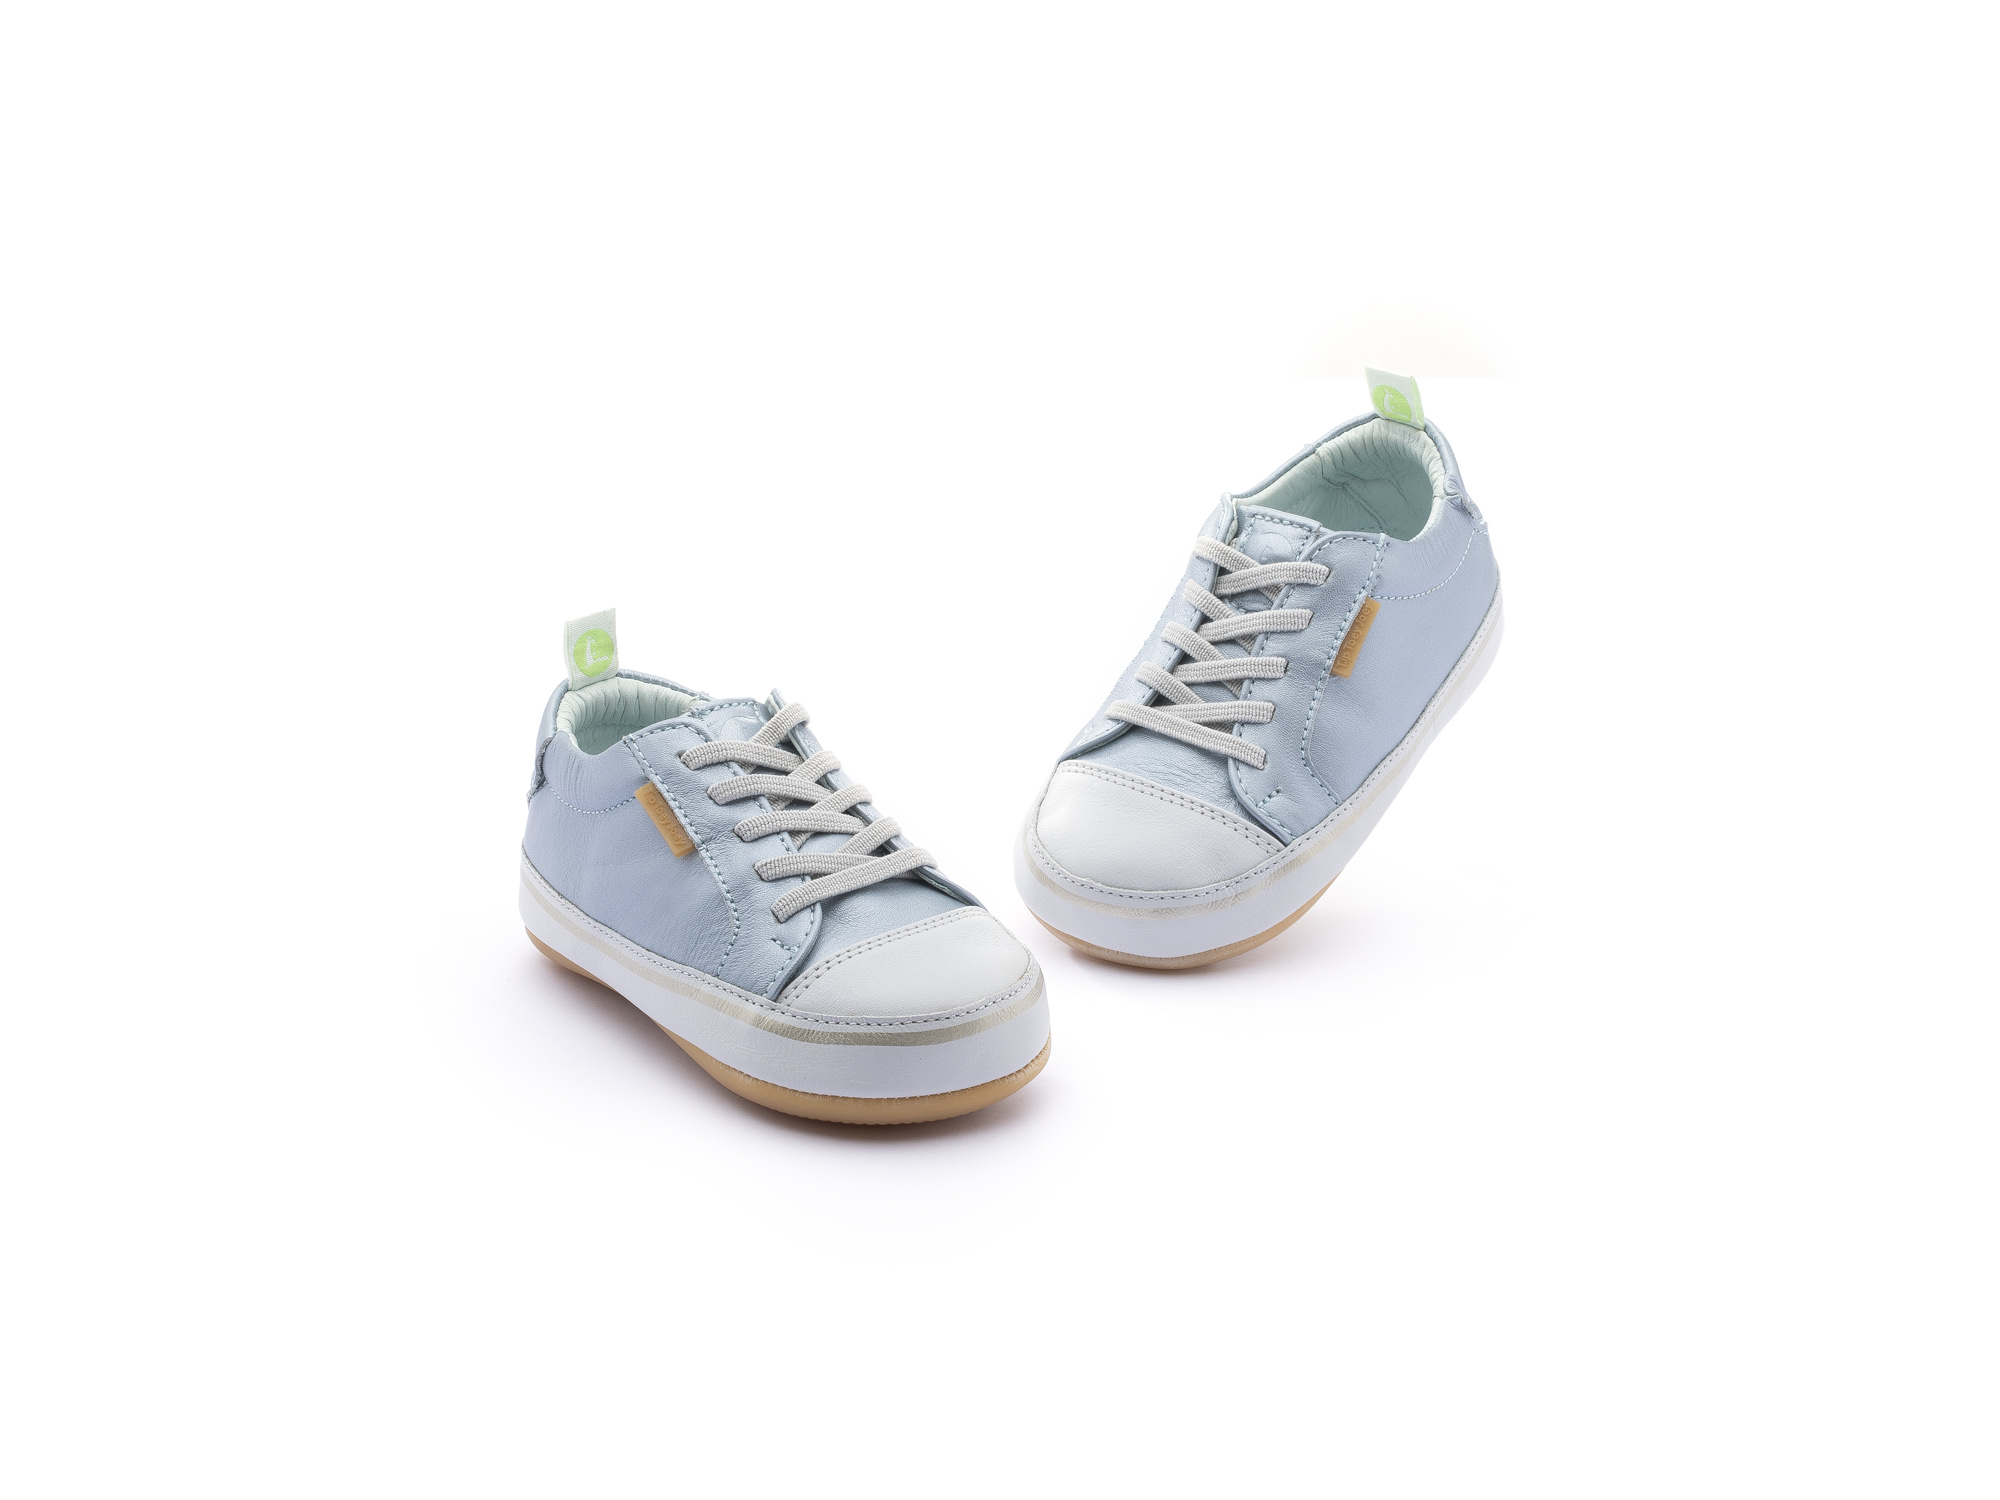 Sneaker Casual Funky Antique Blue/ Blue Fish Pearl Baby 0 à 2 anos - 3